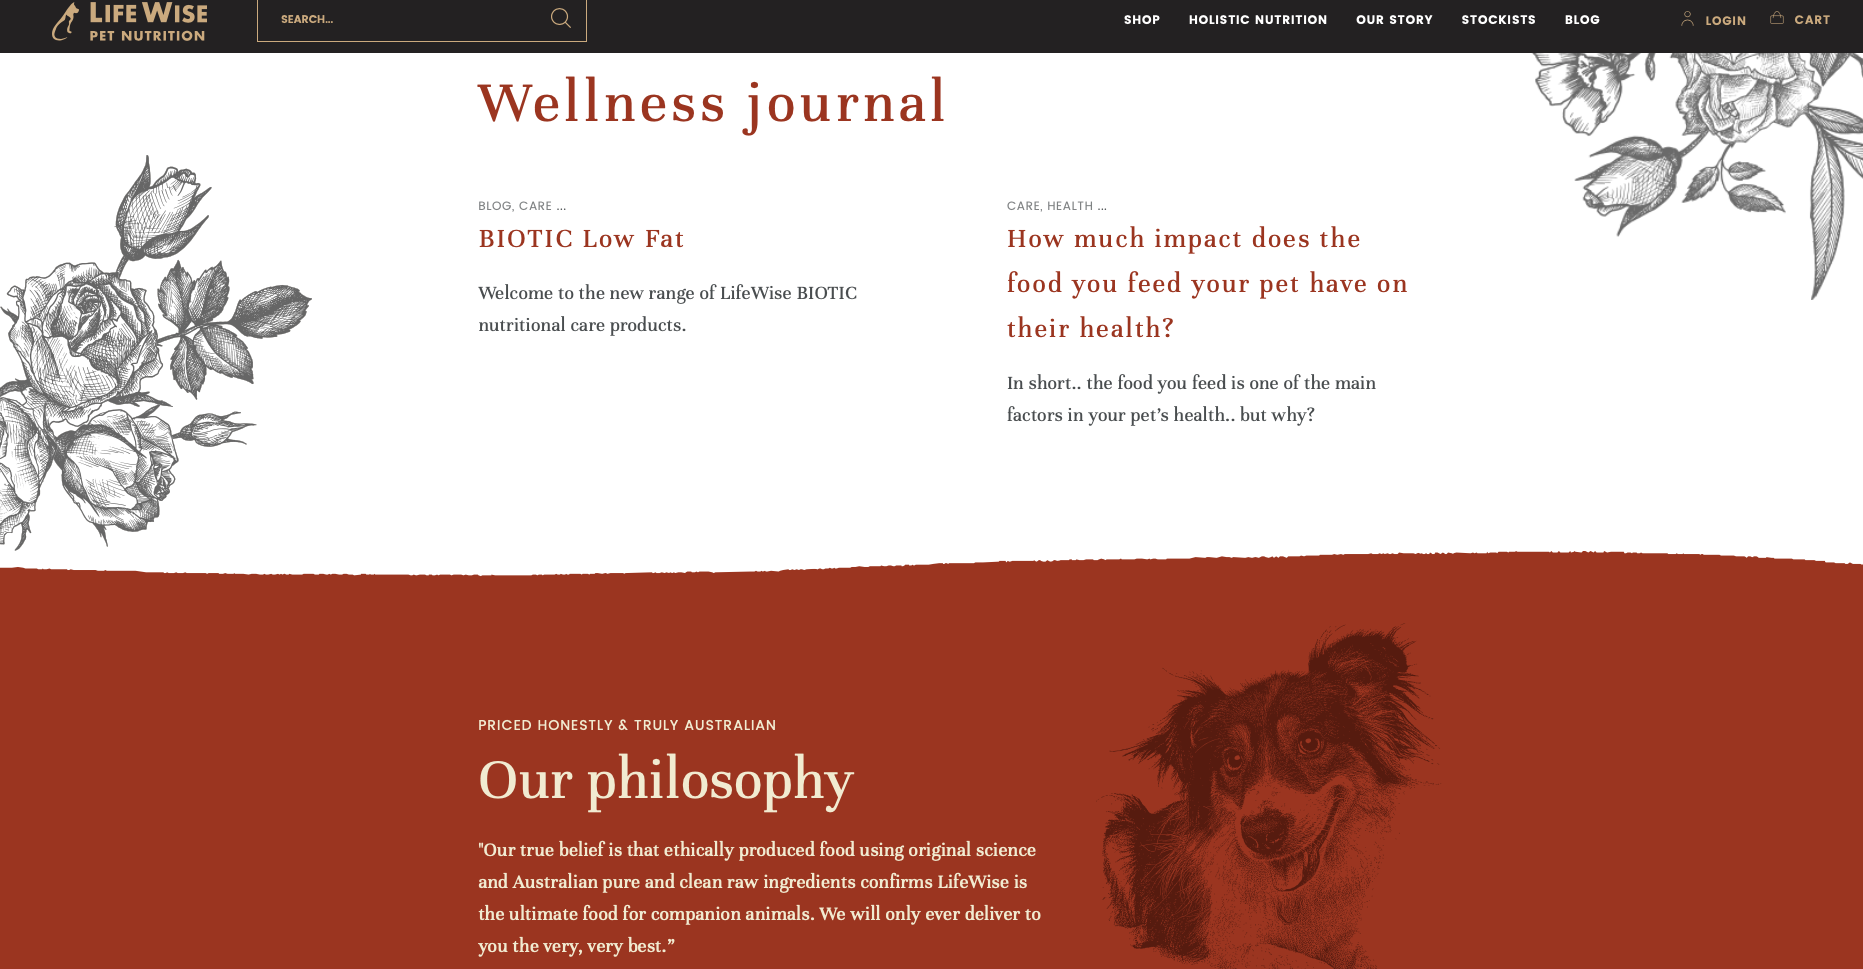 Life Wise Pet Nutrition home page